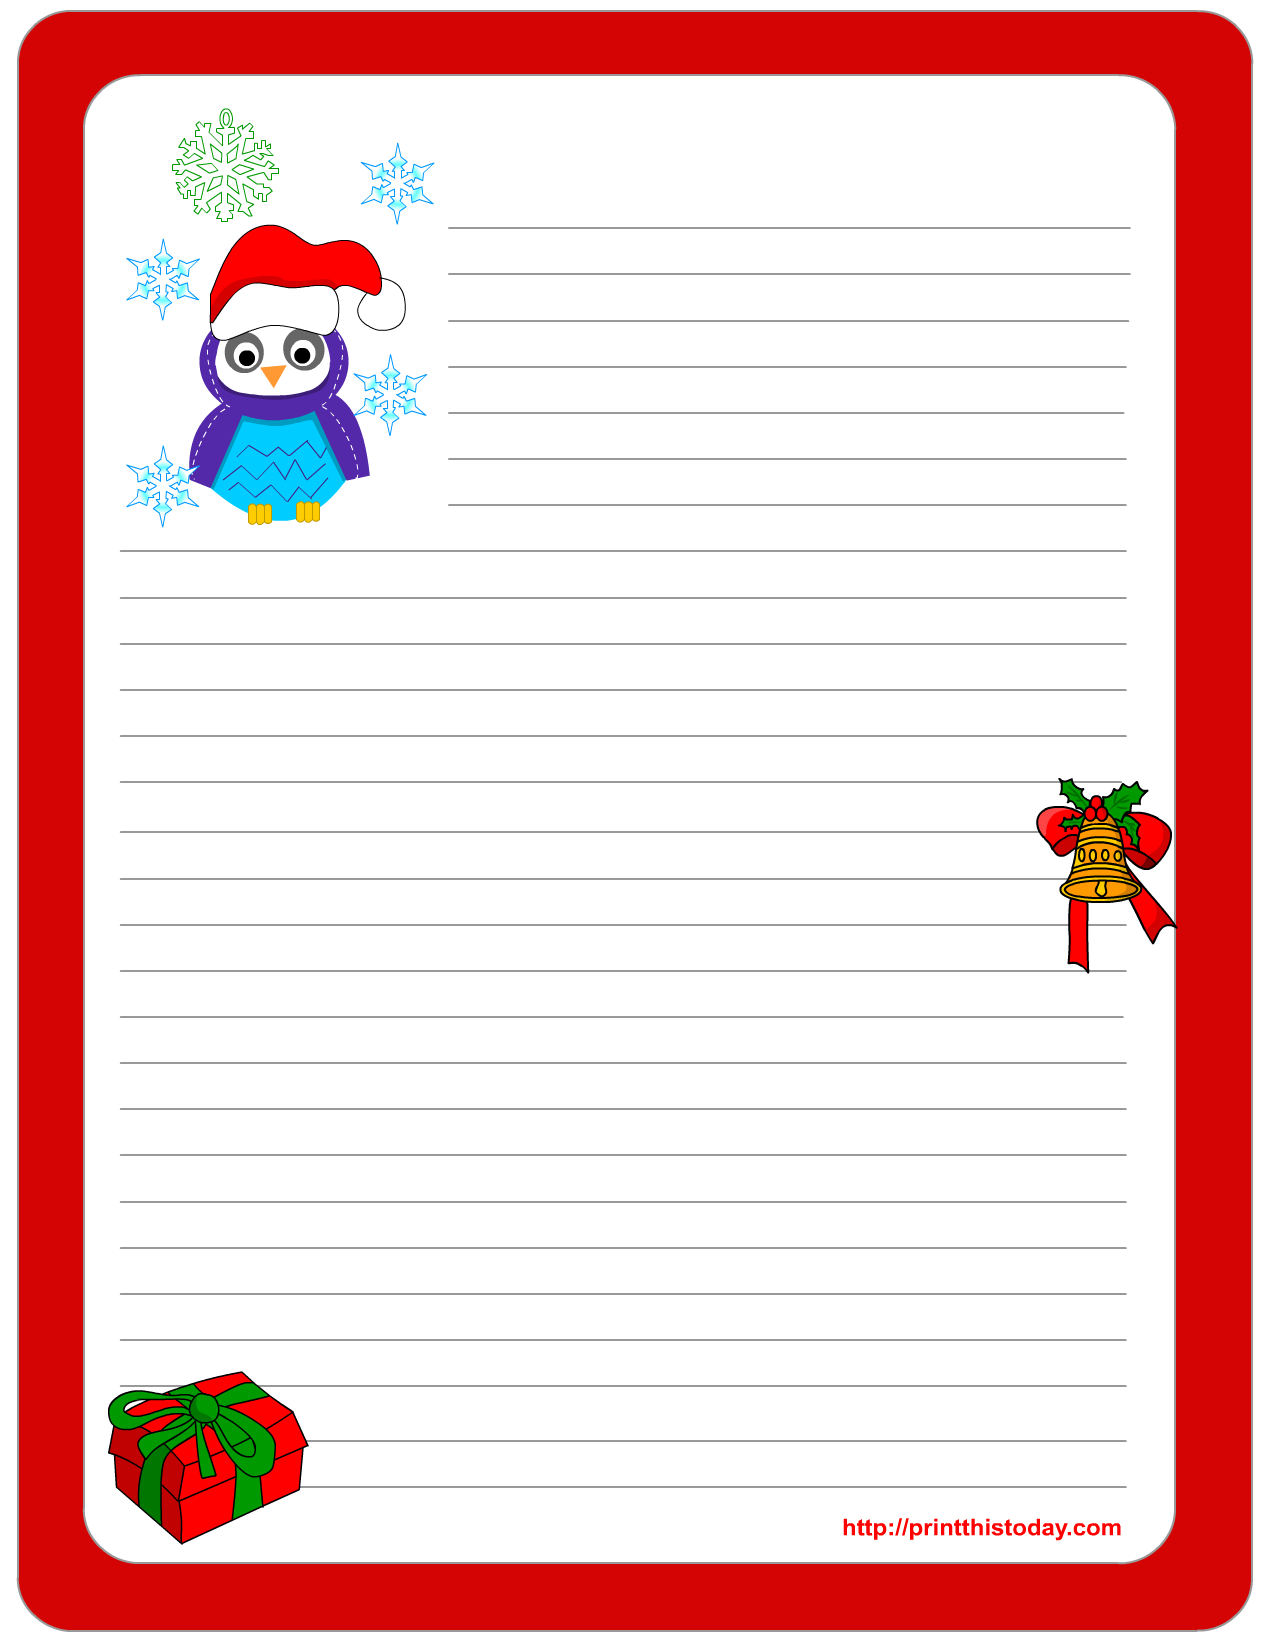 Free downloadable christmas letterhead templates healty living guide